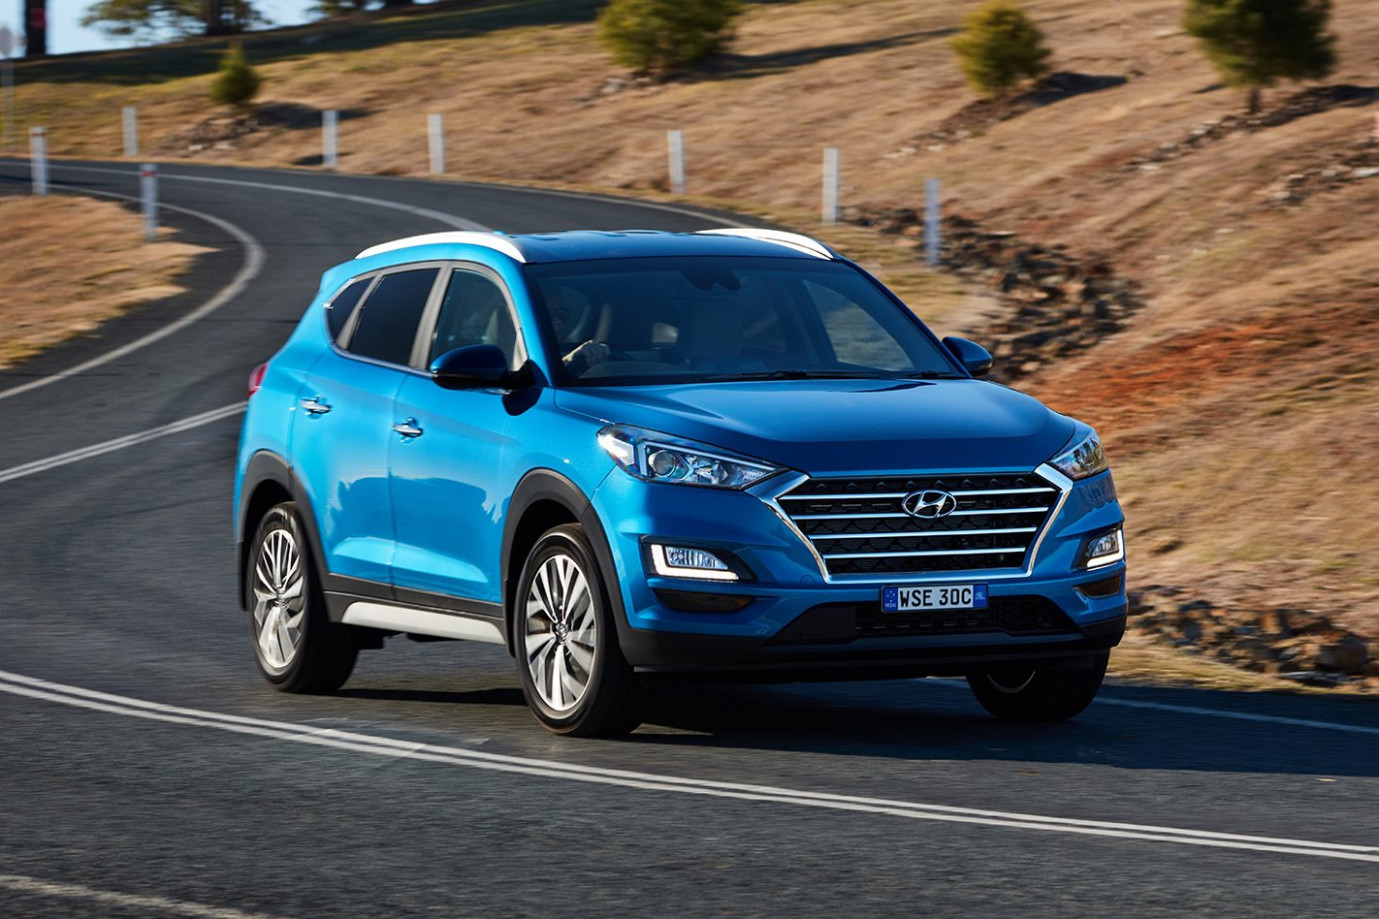 Hyundai Tucson 7 | Review, Price & Features